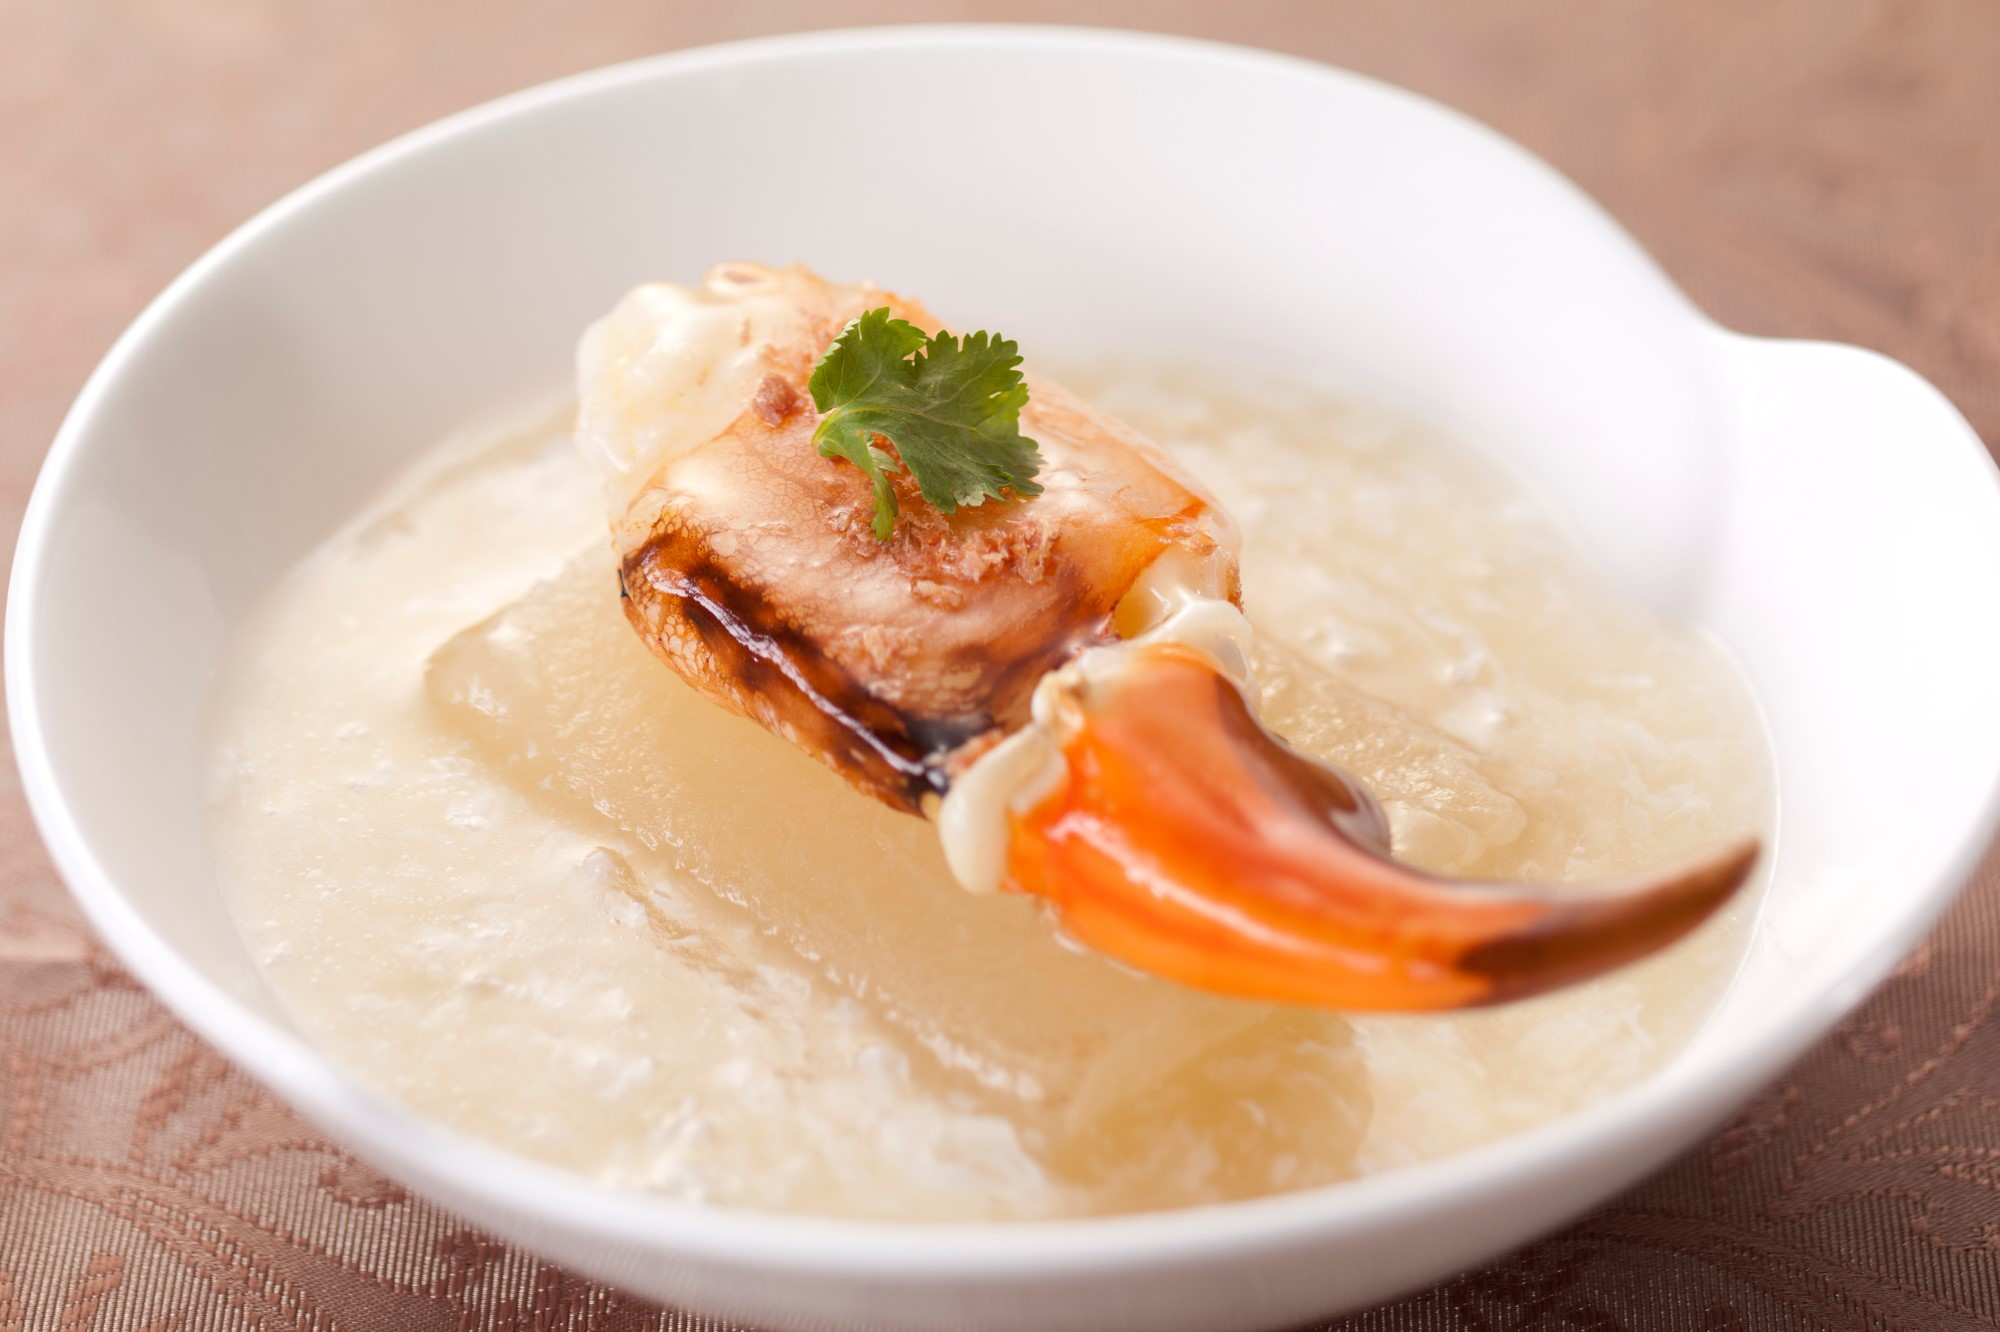 Steamed fresh crab claw with winter melon in egg white